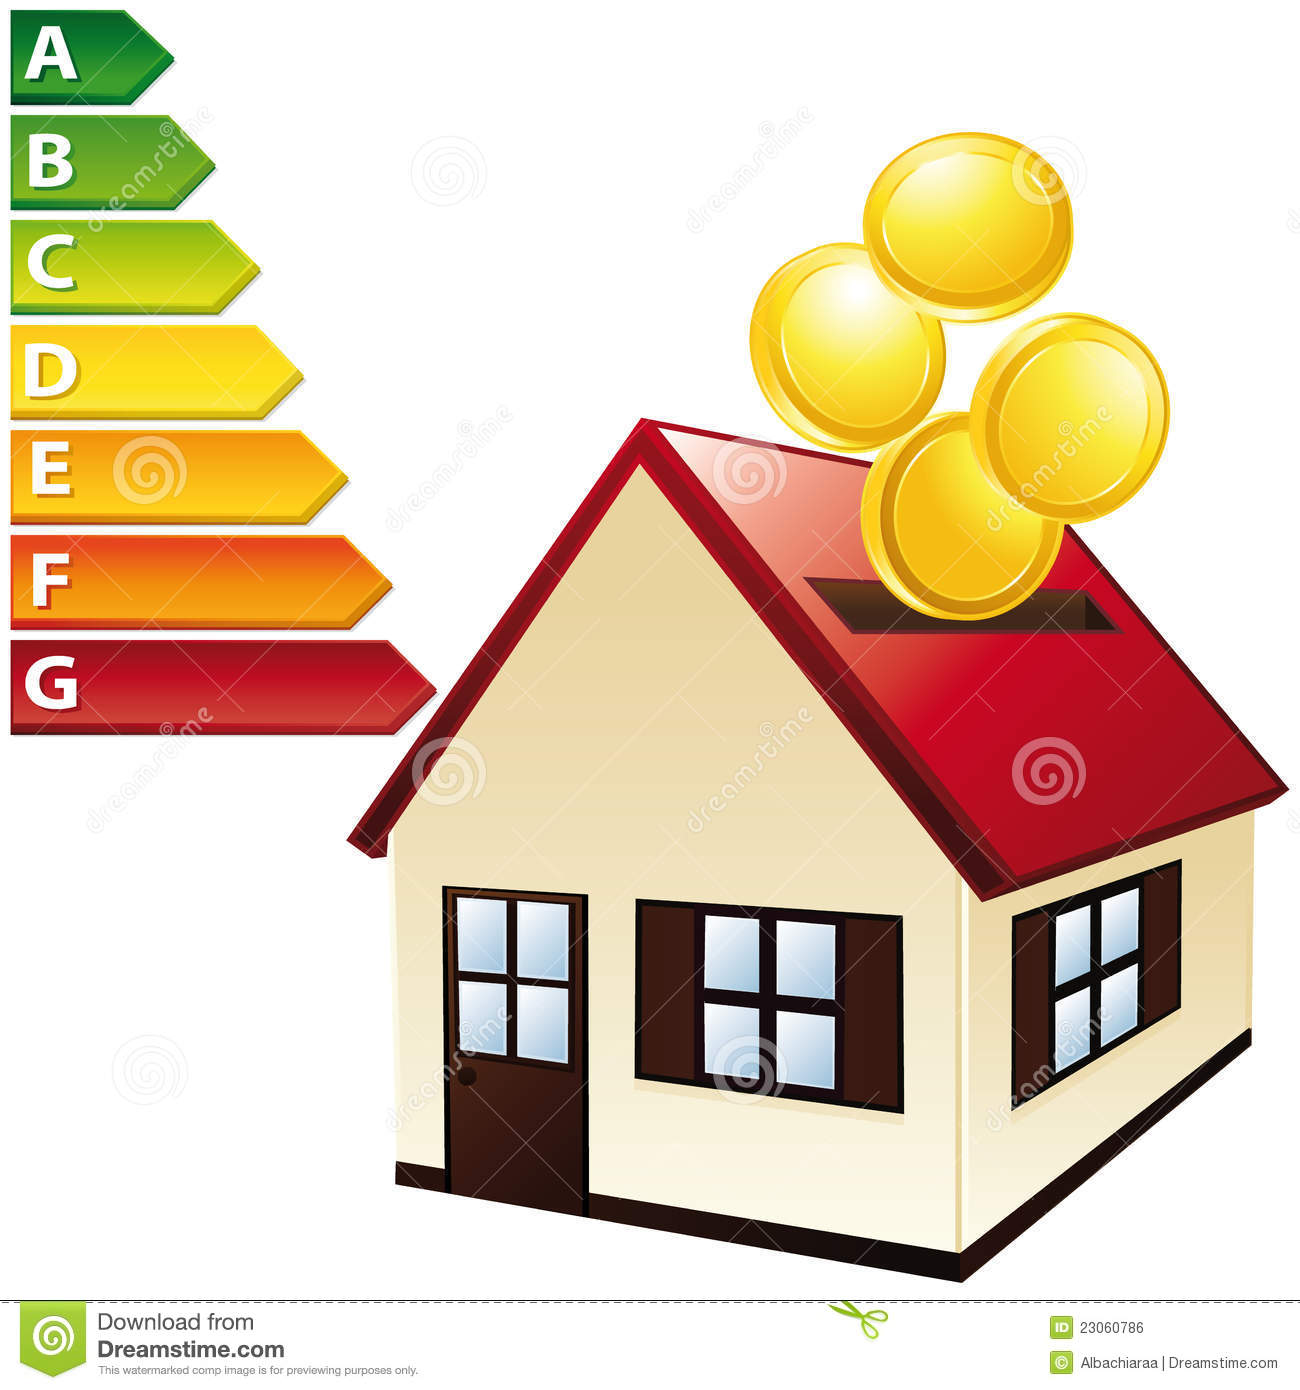 Charming Energy Balance Home. Budget Concept. Royalty Free Stock Image